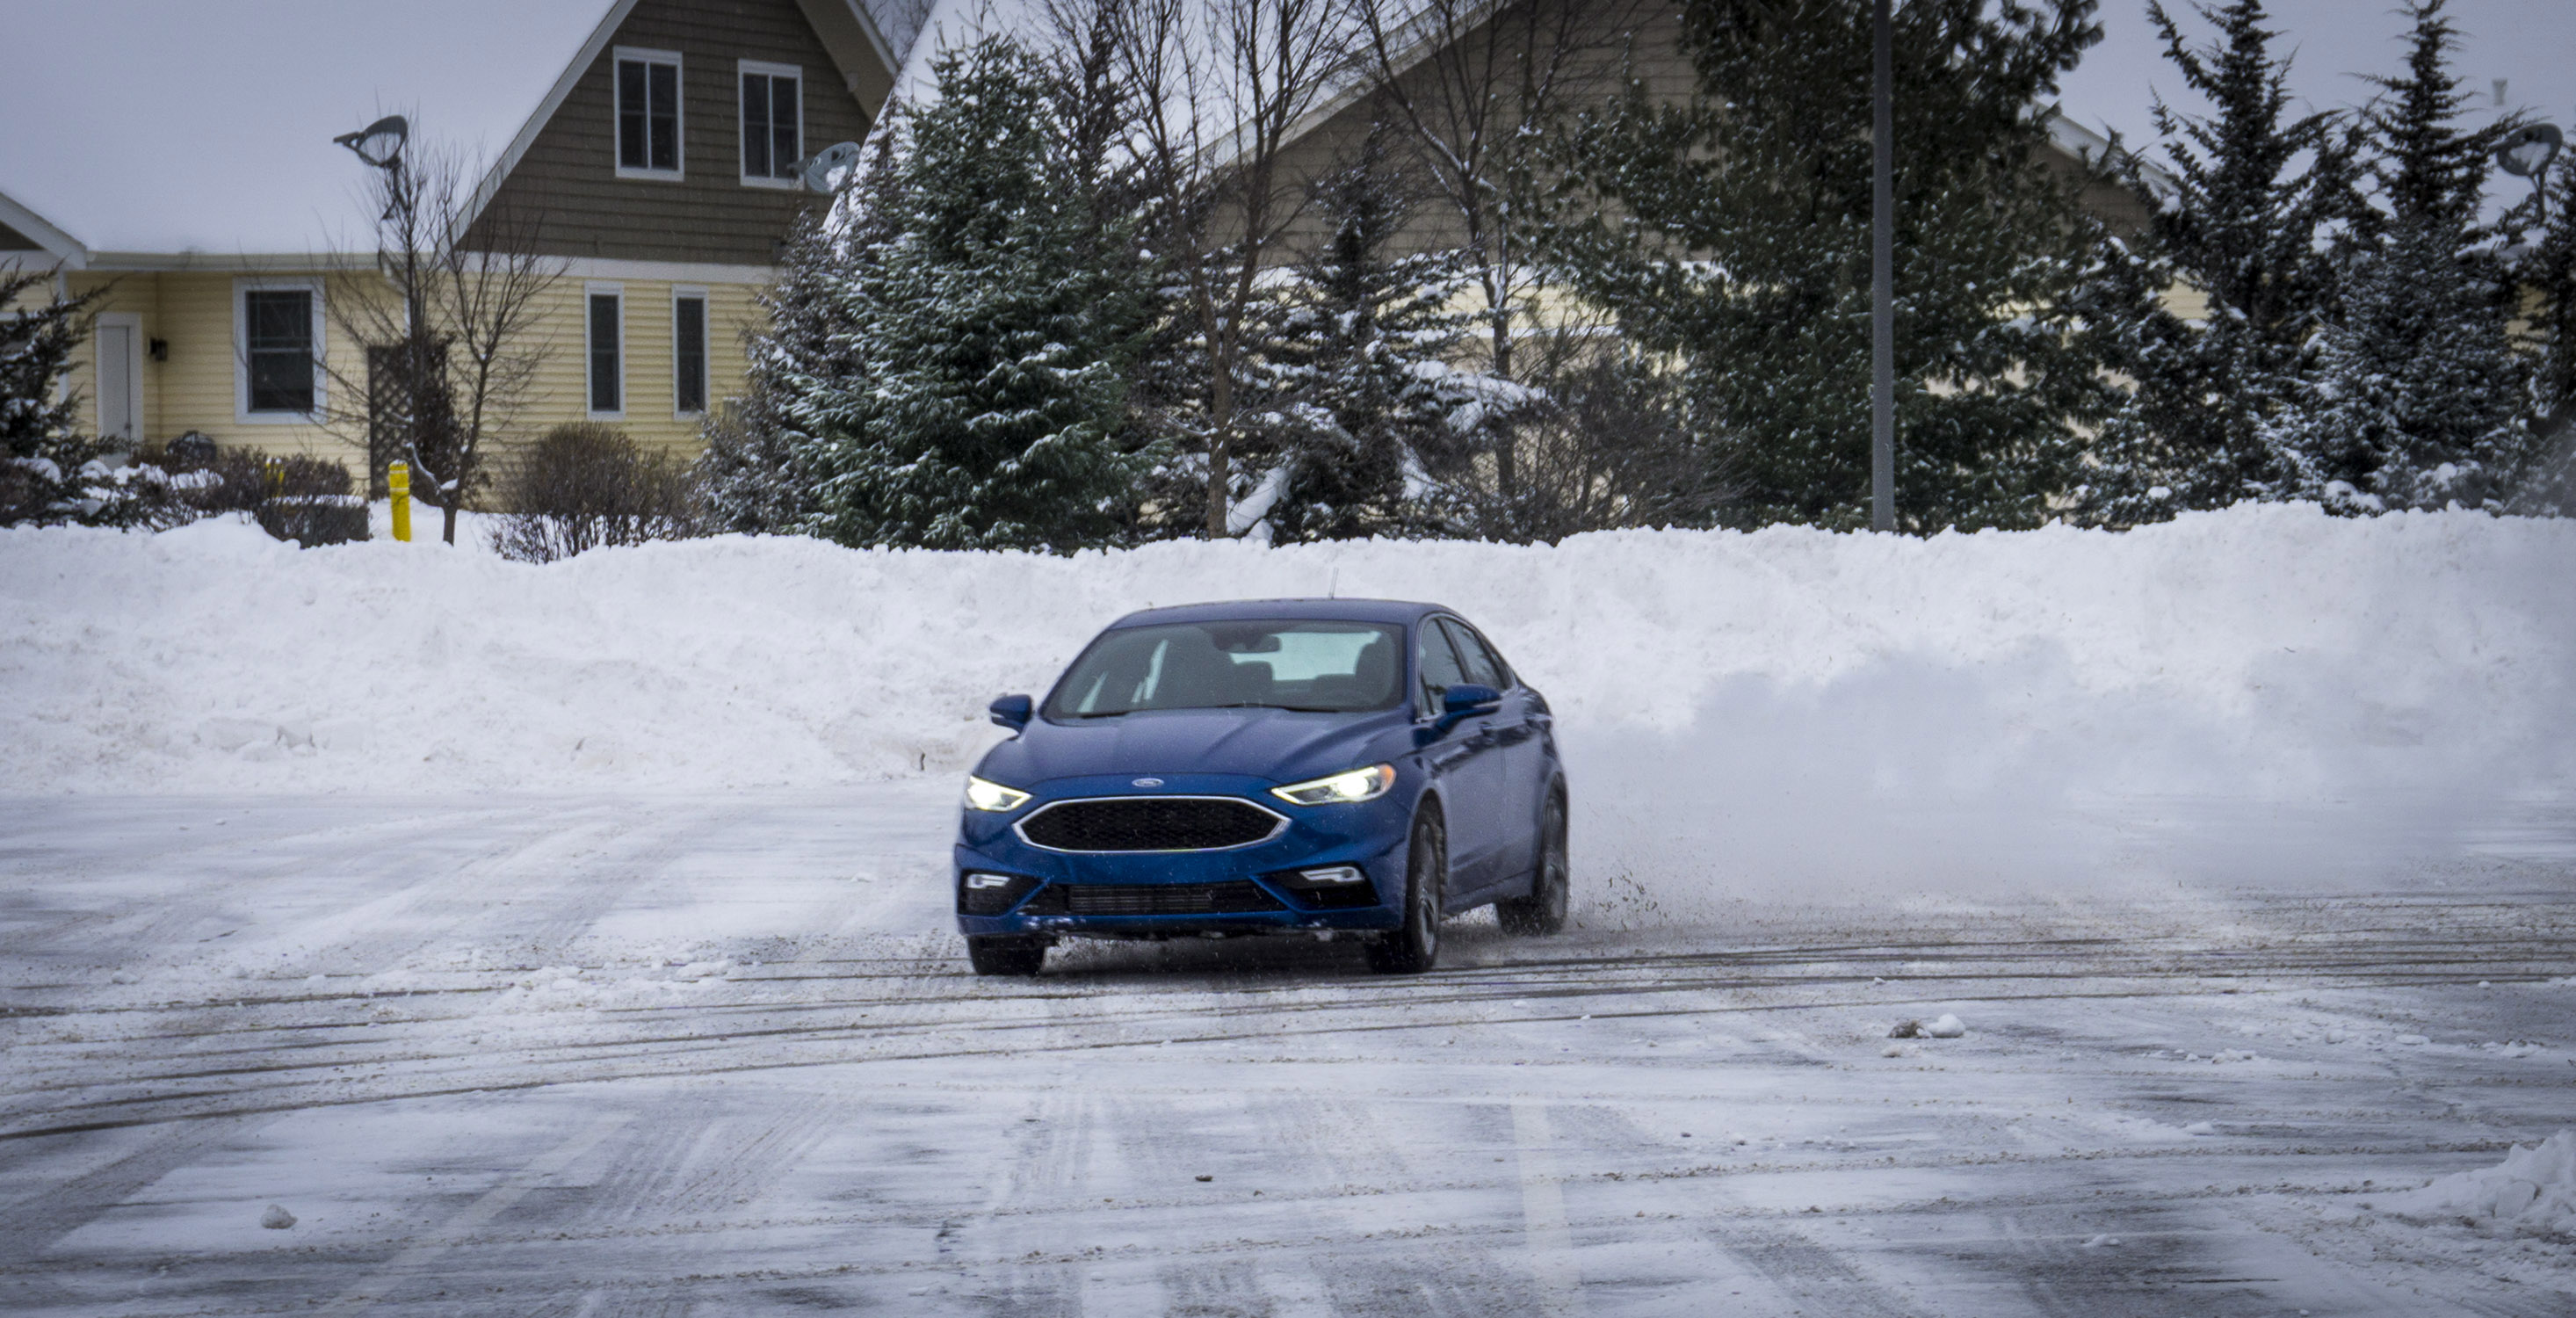 Ford Fusion Awd In Snow